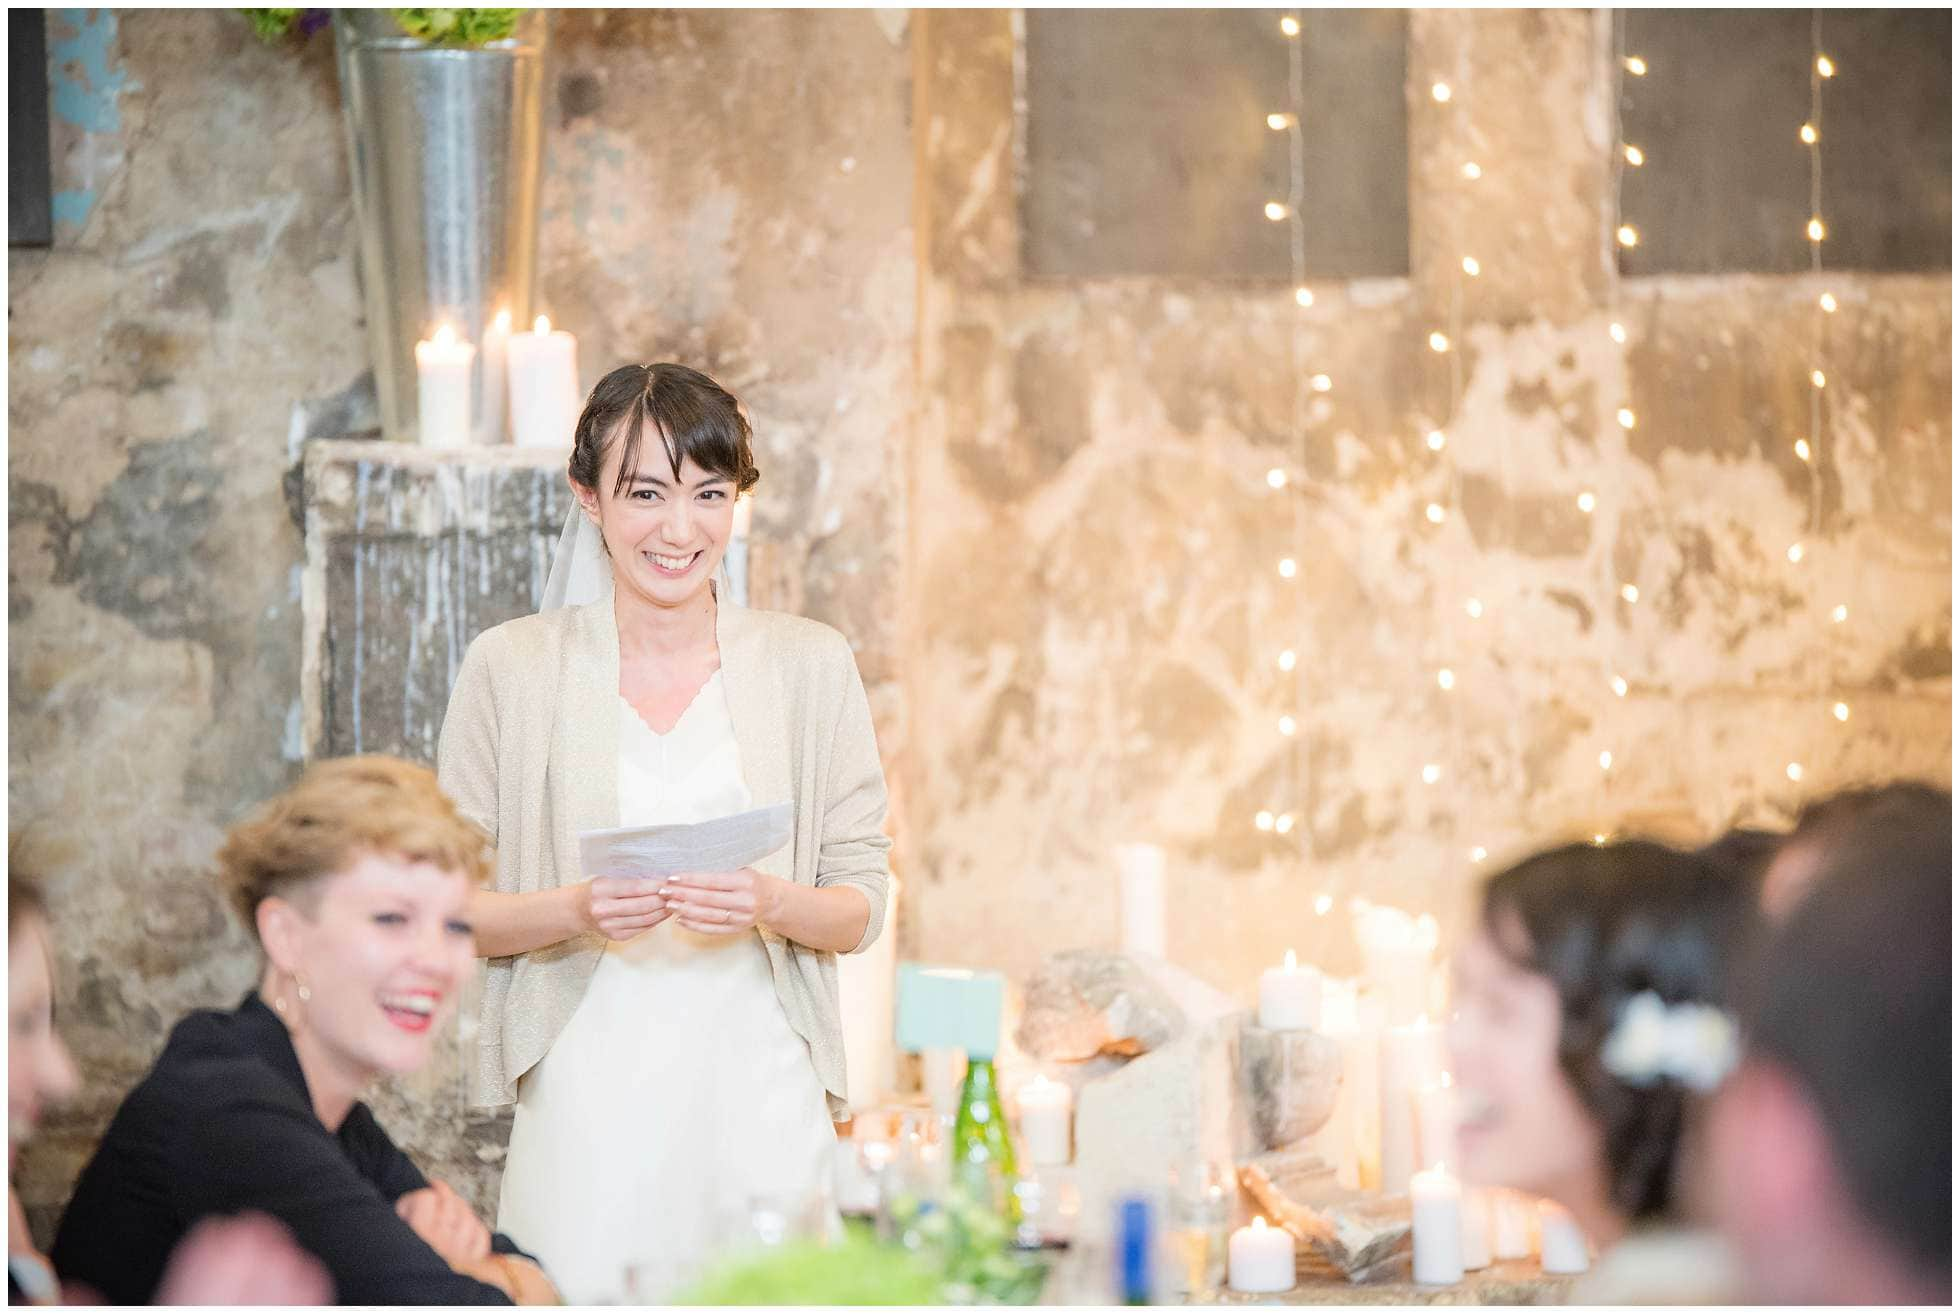 The beautiful bride gives a speech